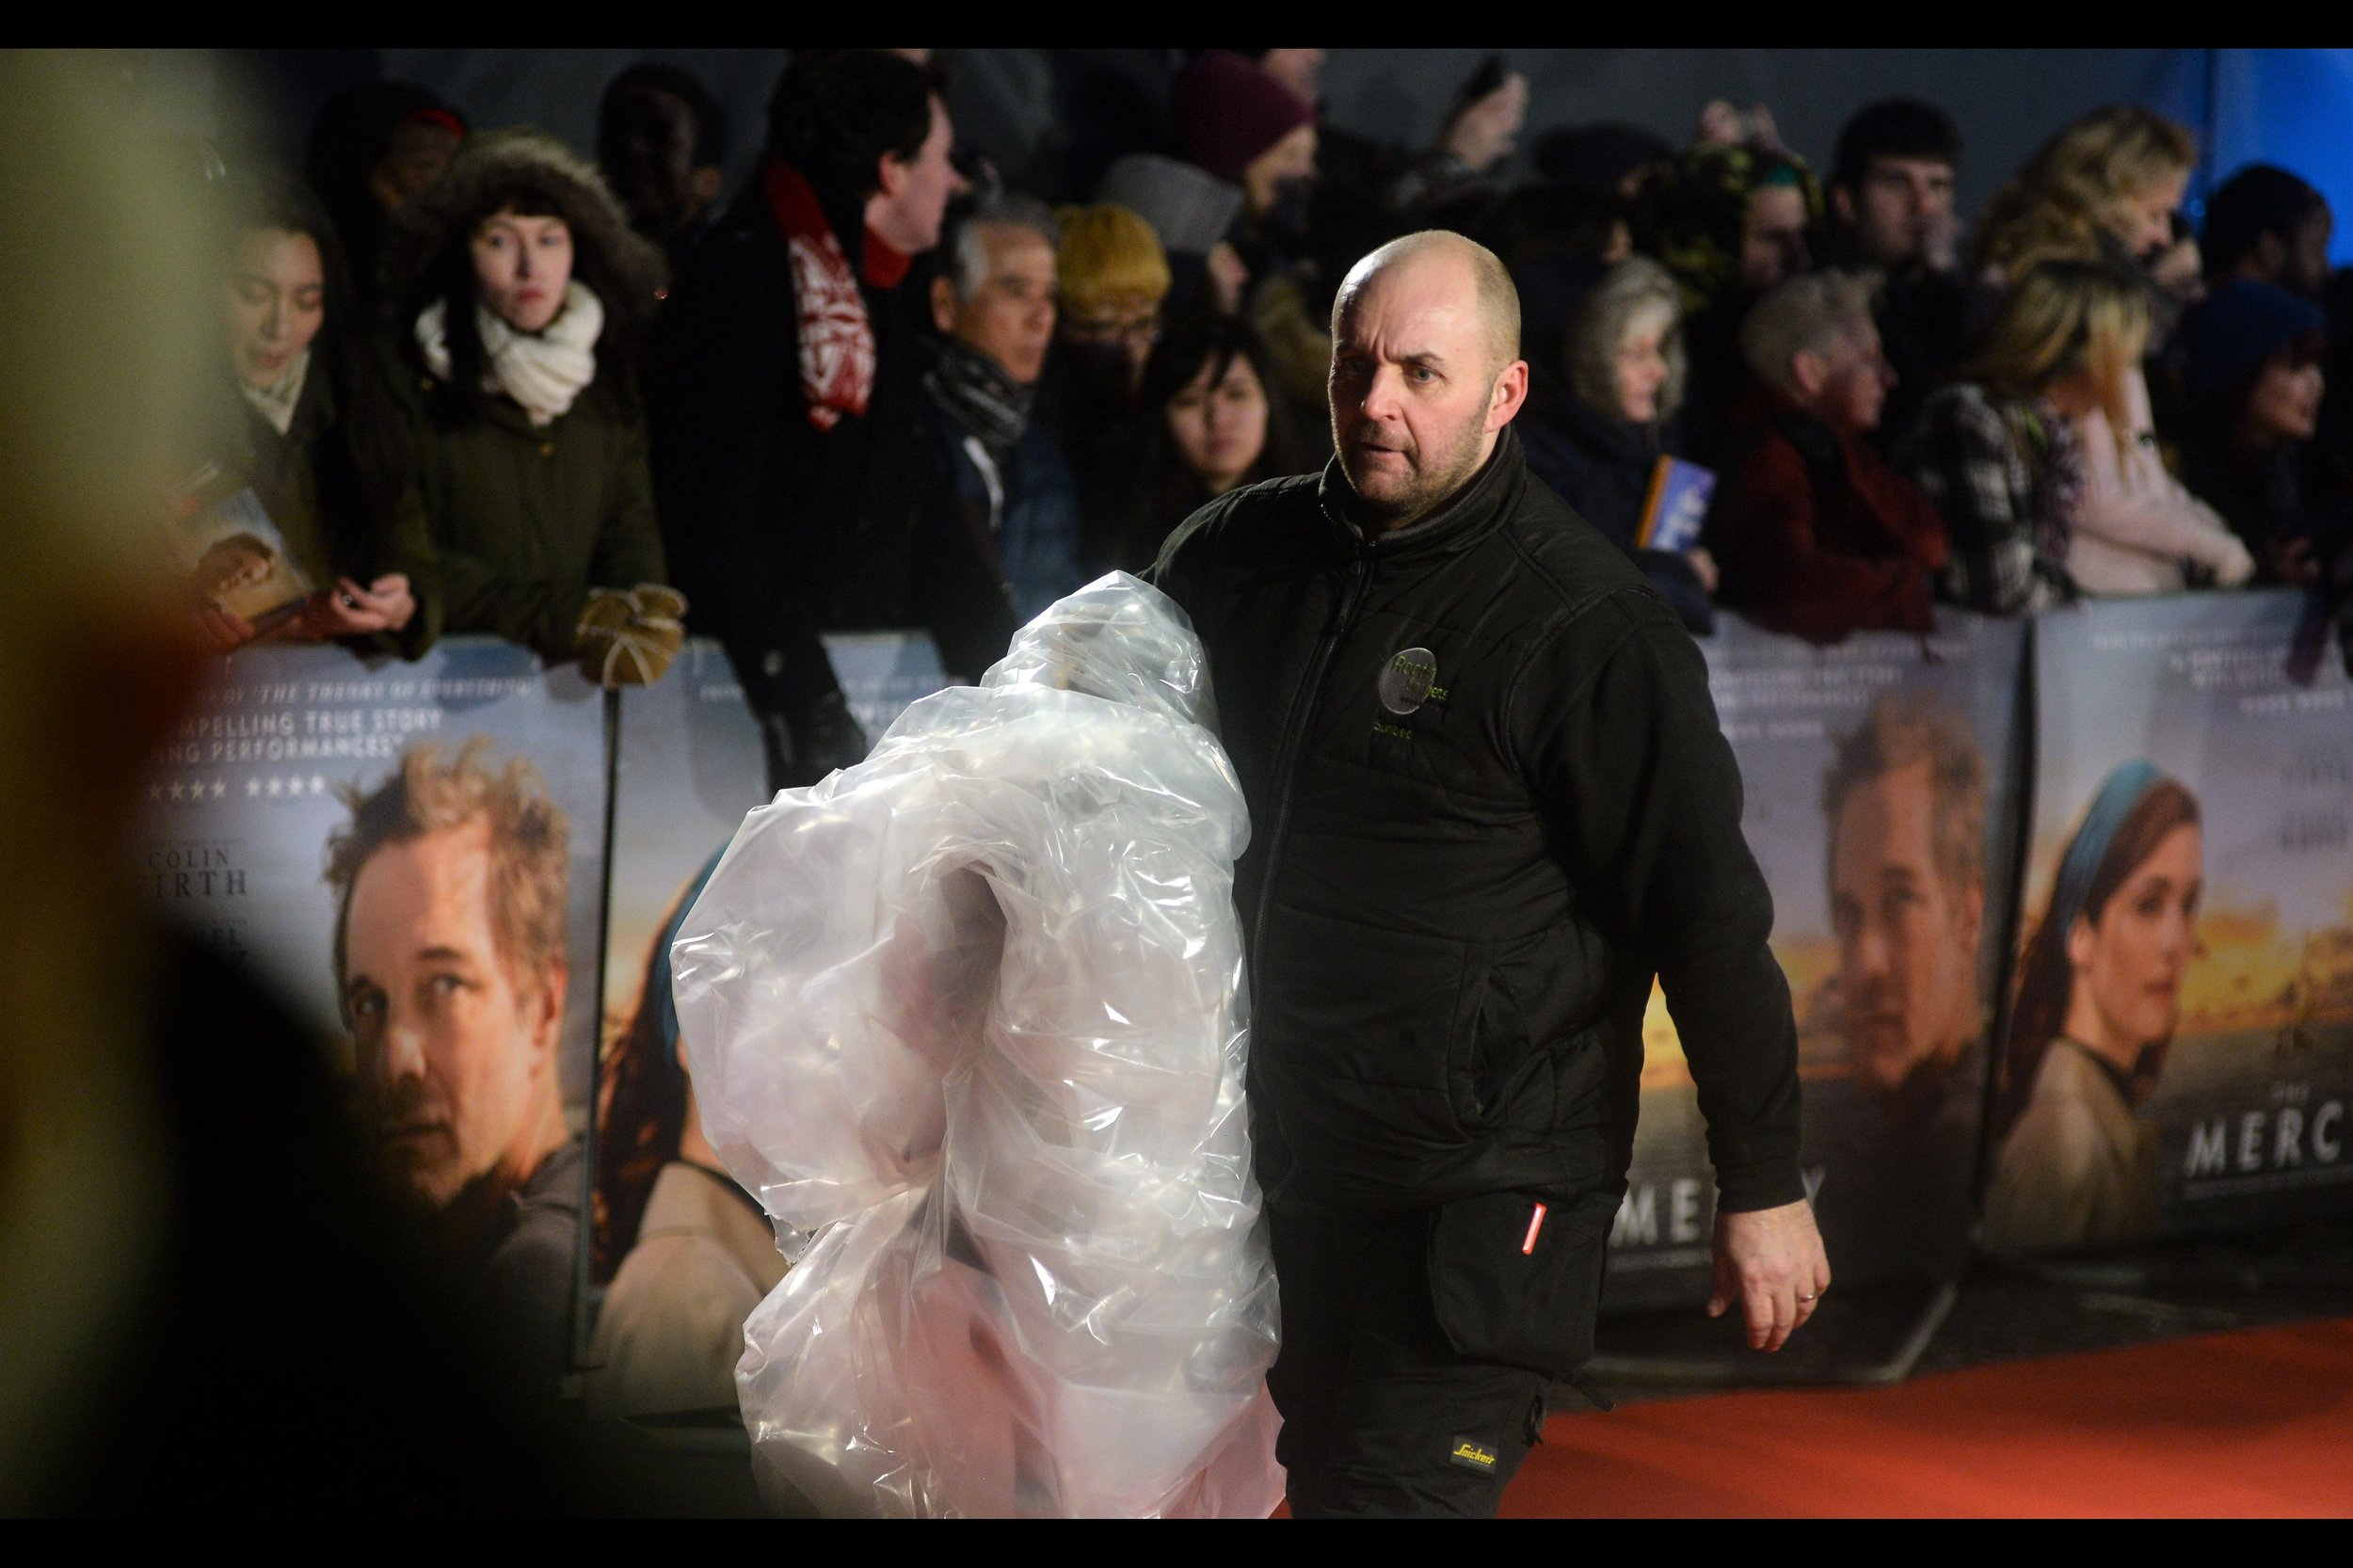 It briefly snowed (!) at this premiere (I wasn't around : I was at a nearby Pret staying necessarily warm) - the protective plastic was removed minutes before the event started.